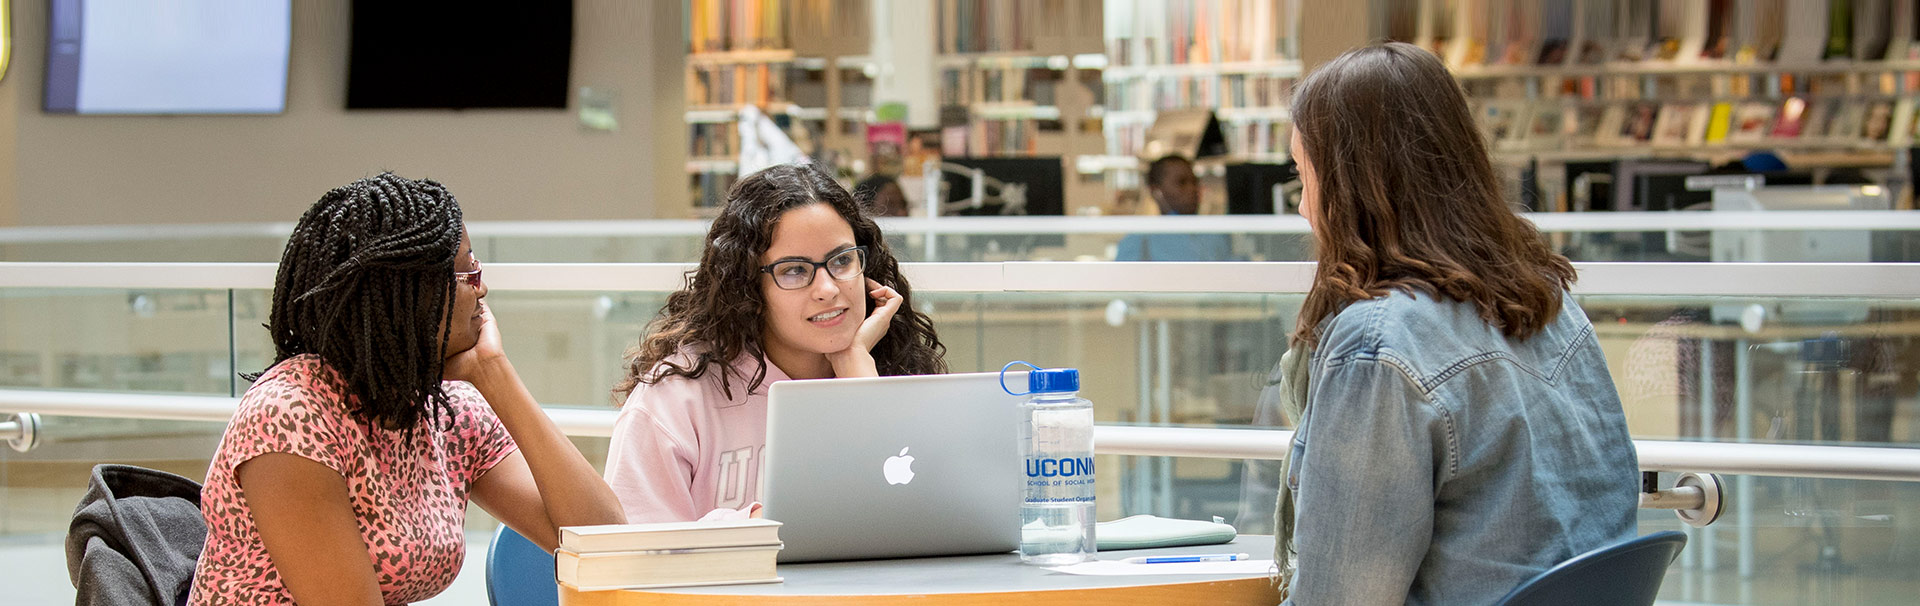 three students sitting in library talking